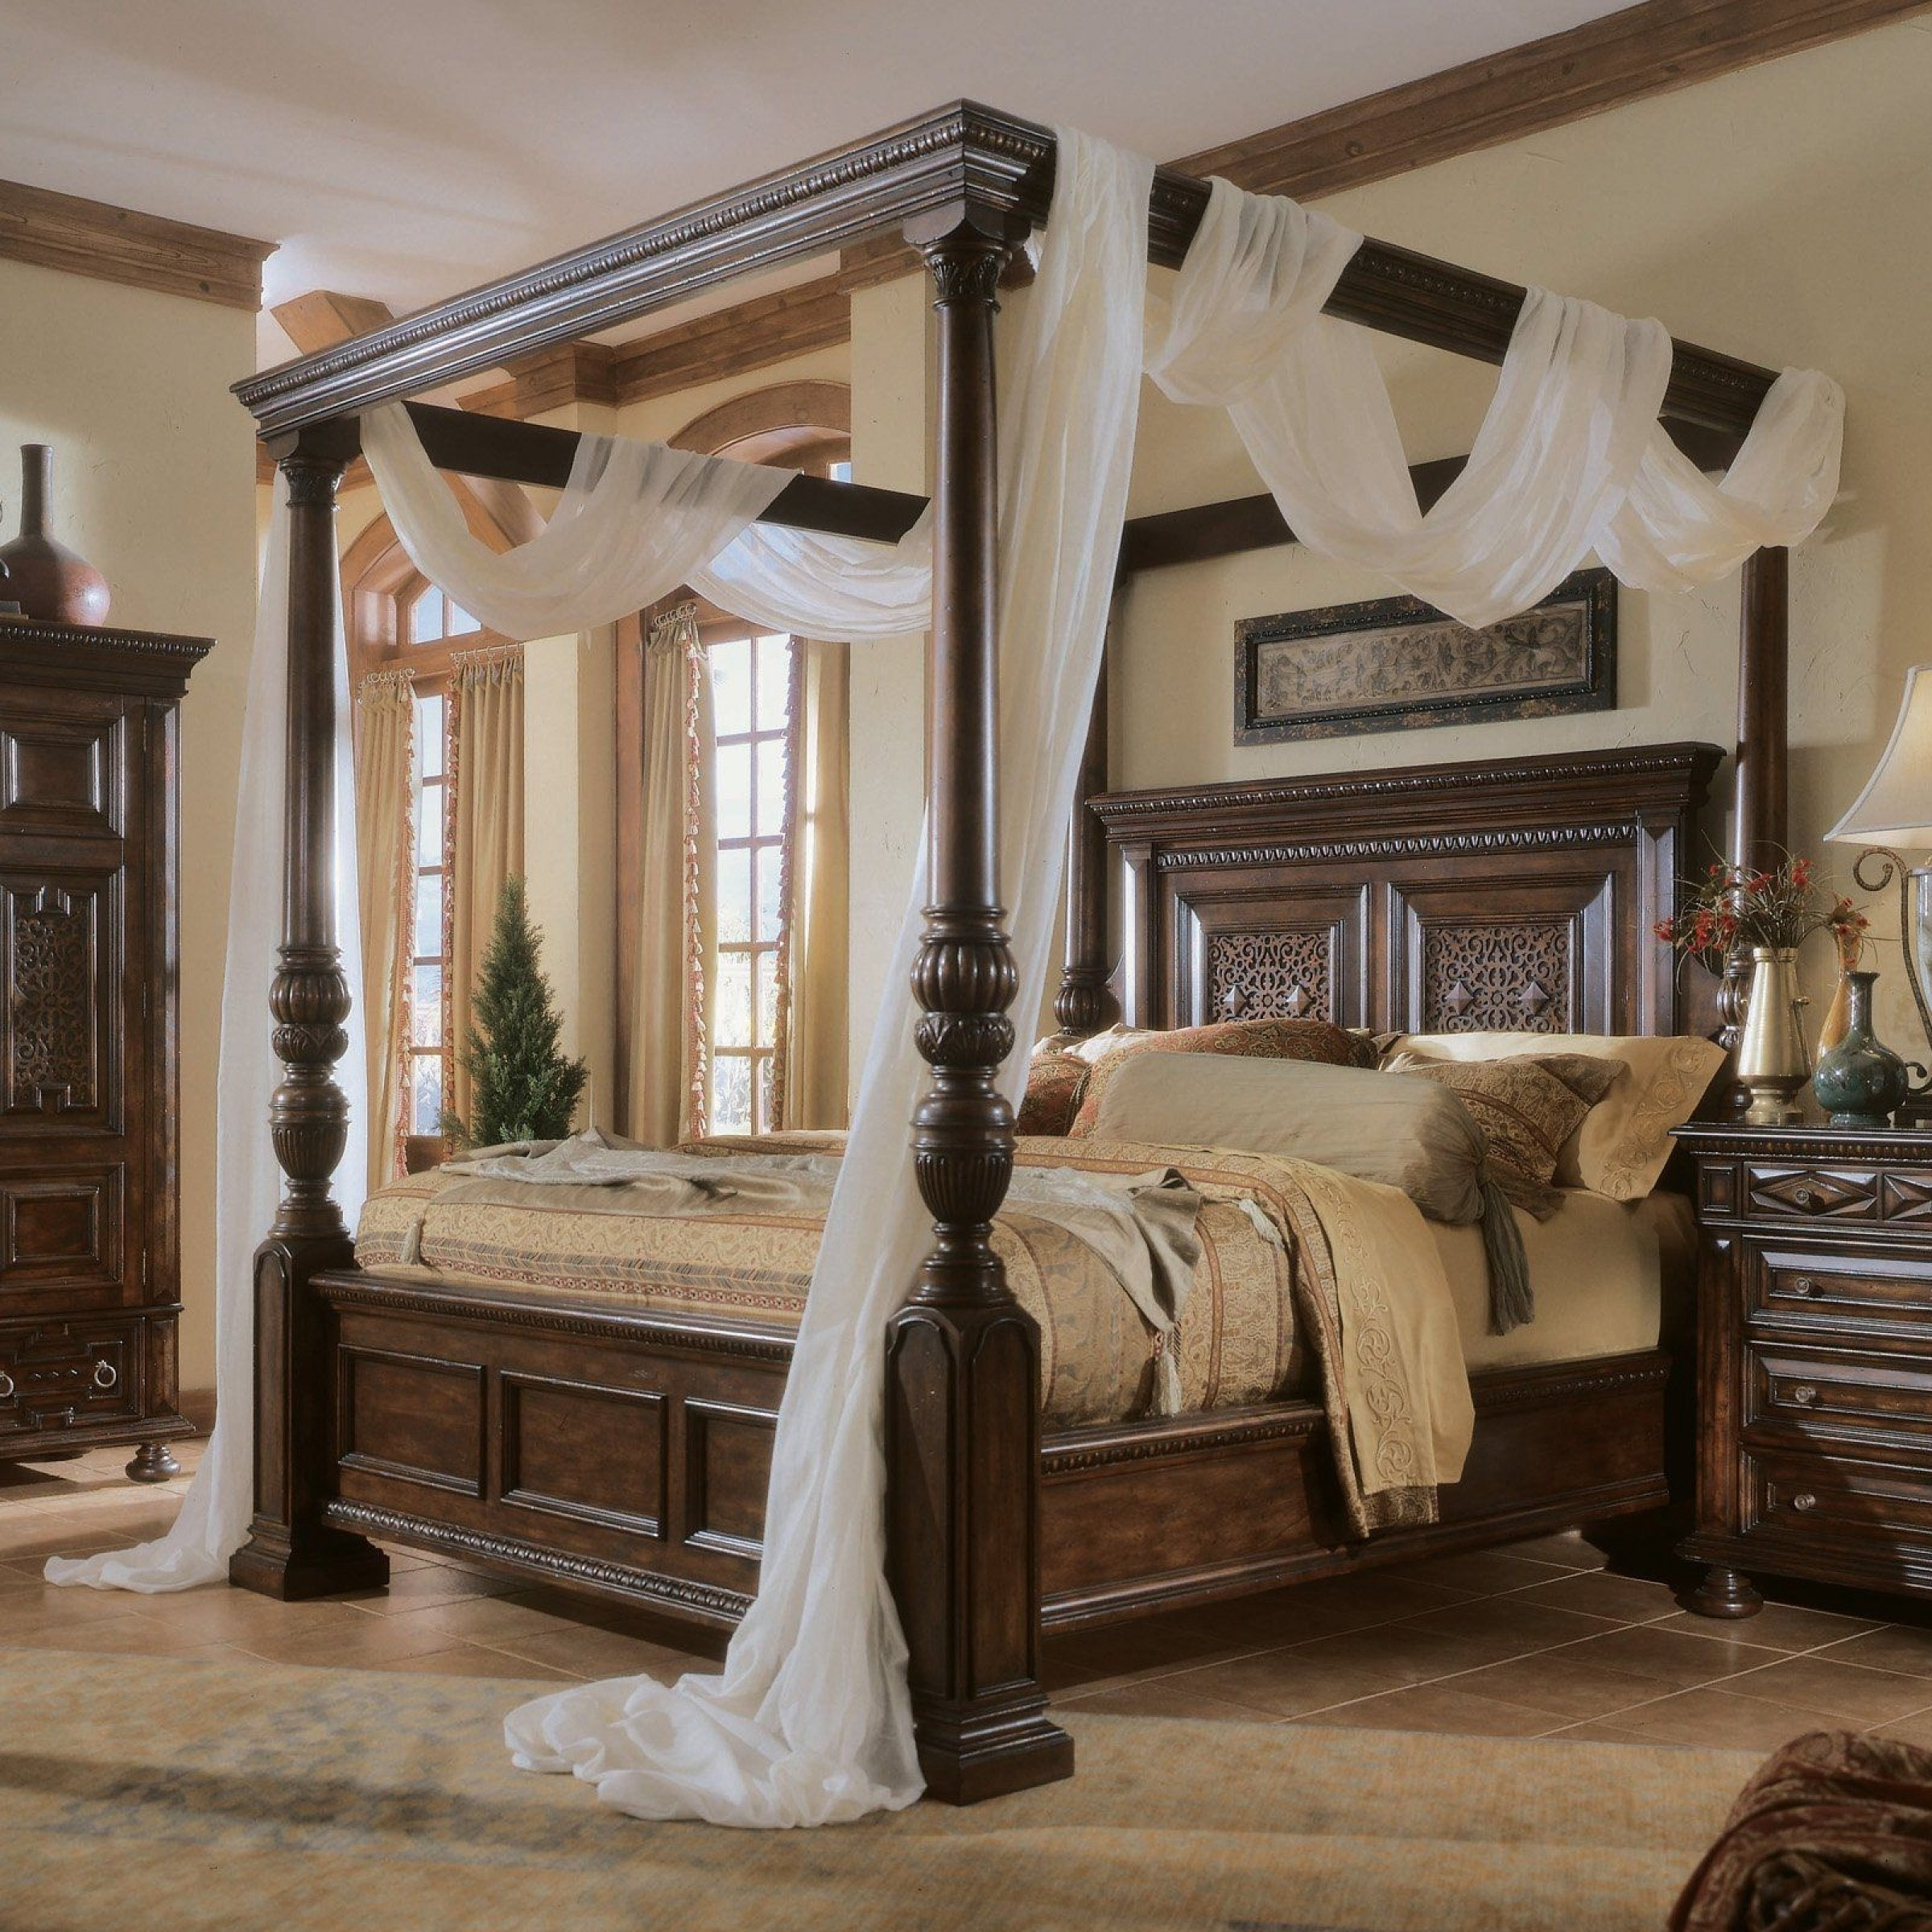 Queen size four poster bed 1 & Queen Size Four Poster Bed - Foter